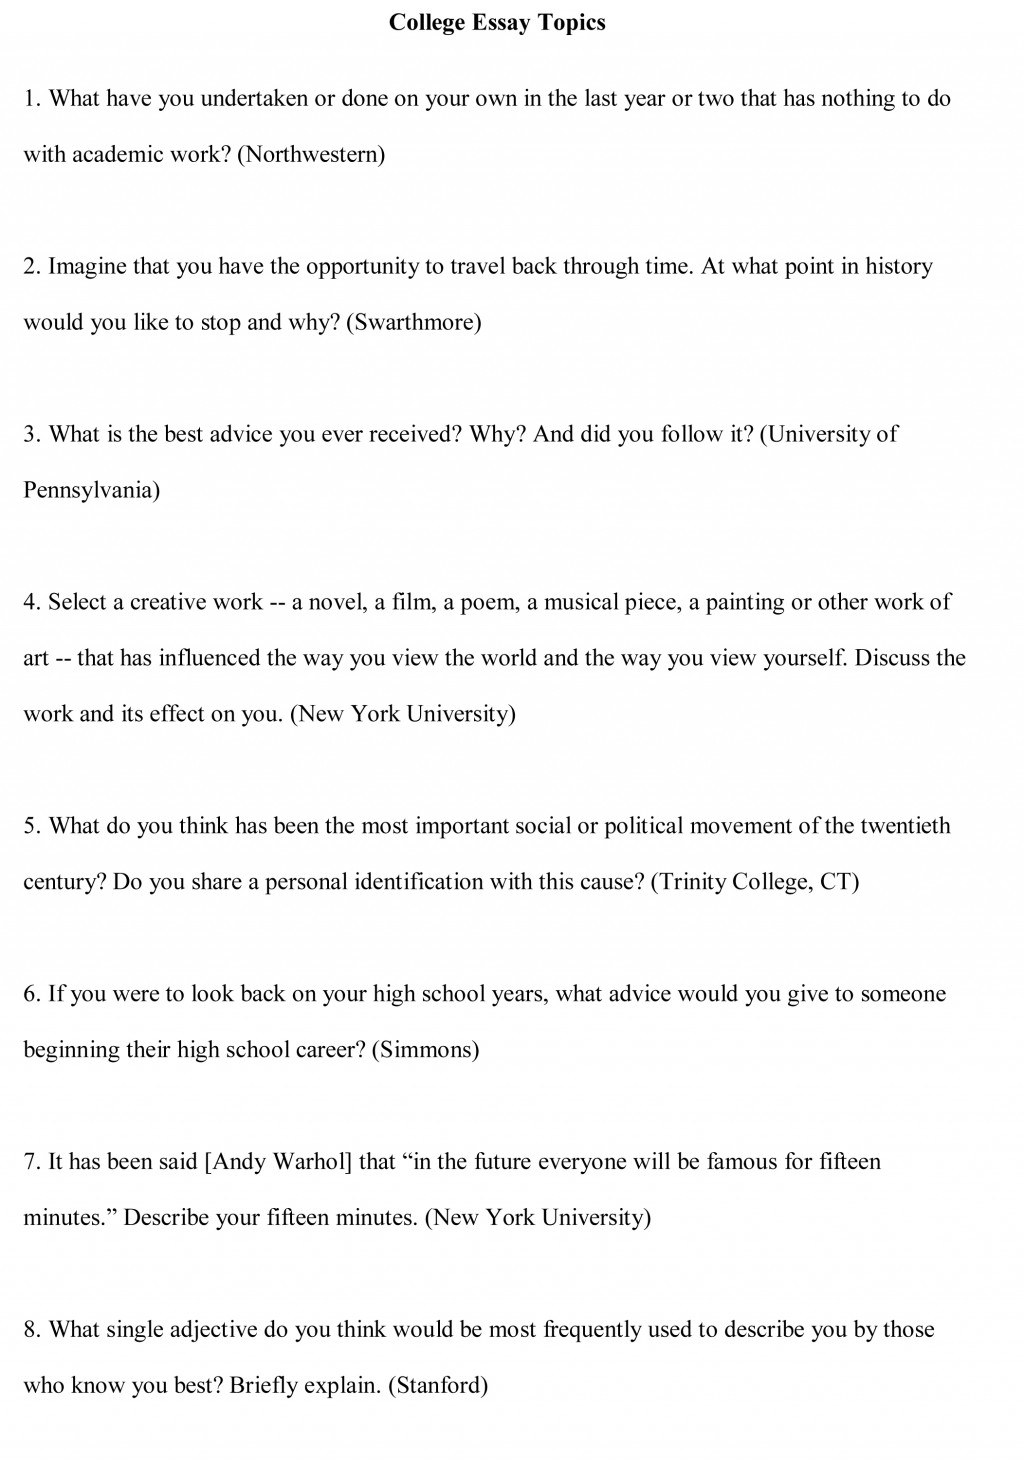 016 College Essay Topics Free Sample Example Argumentative Rare Prompts For 7th Graders High School Pdf Large